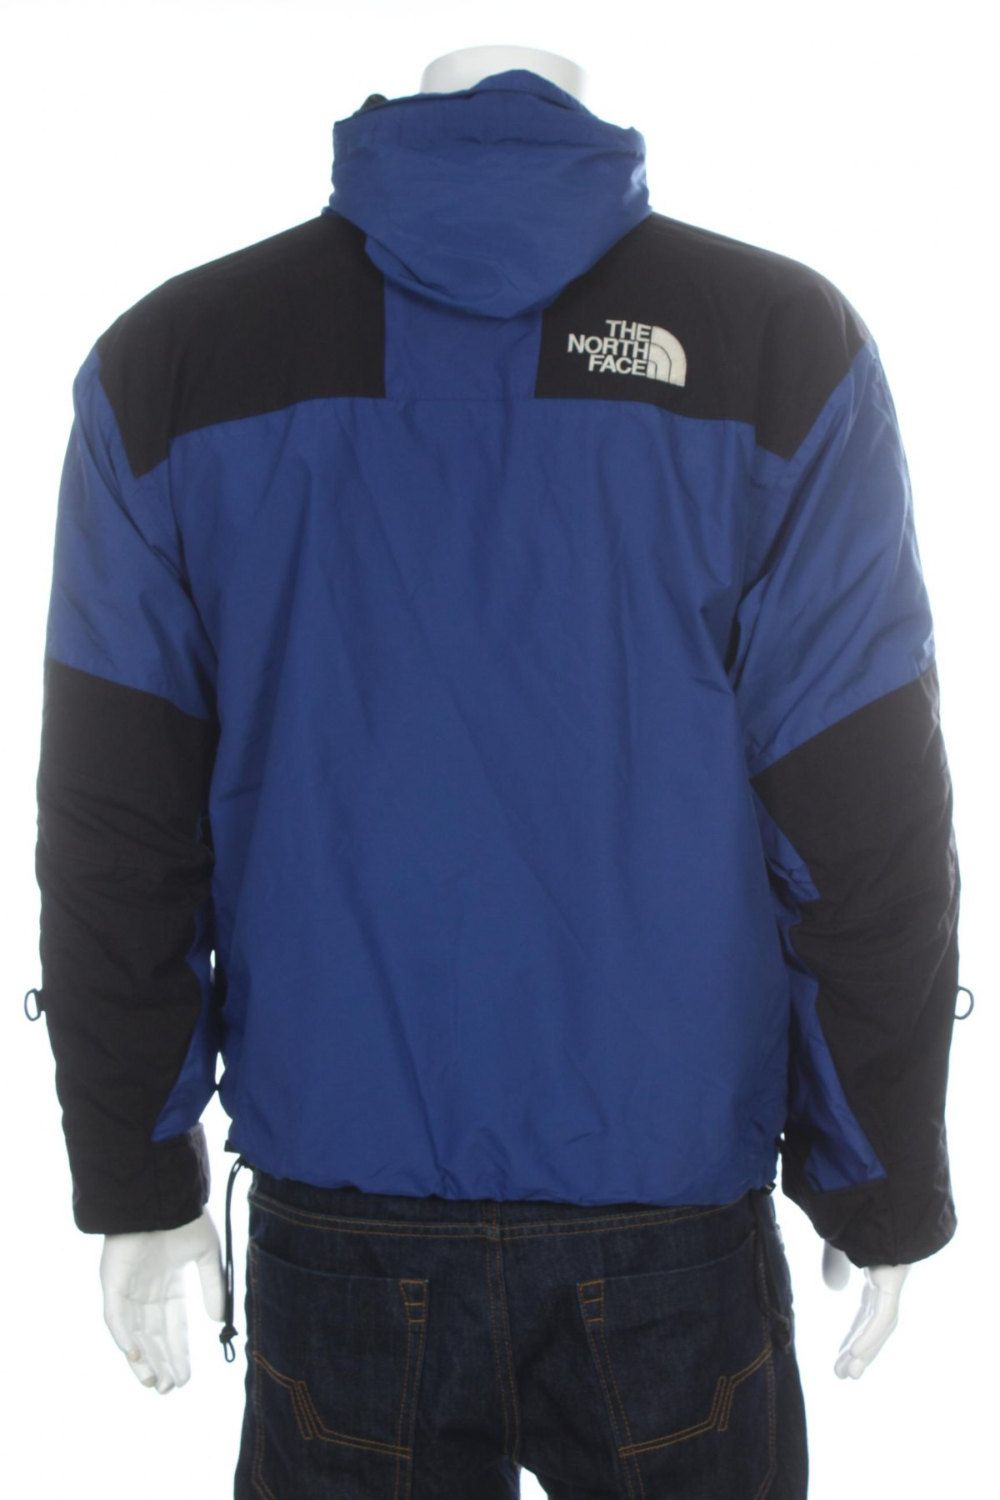 4b2a2fd176 Vintage 90s The North Face Mountain Guide Gore-Tex jacket Blue Black Size M  by VapeoVintage on Etsy